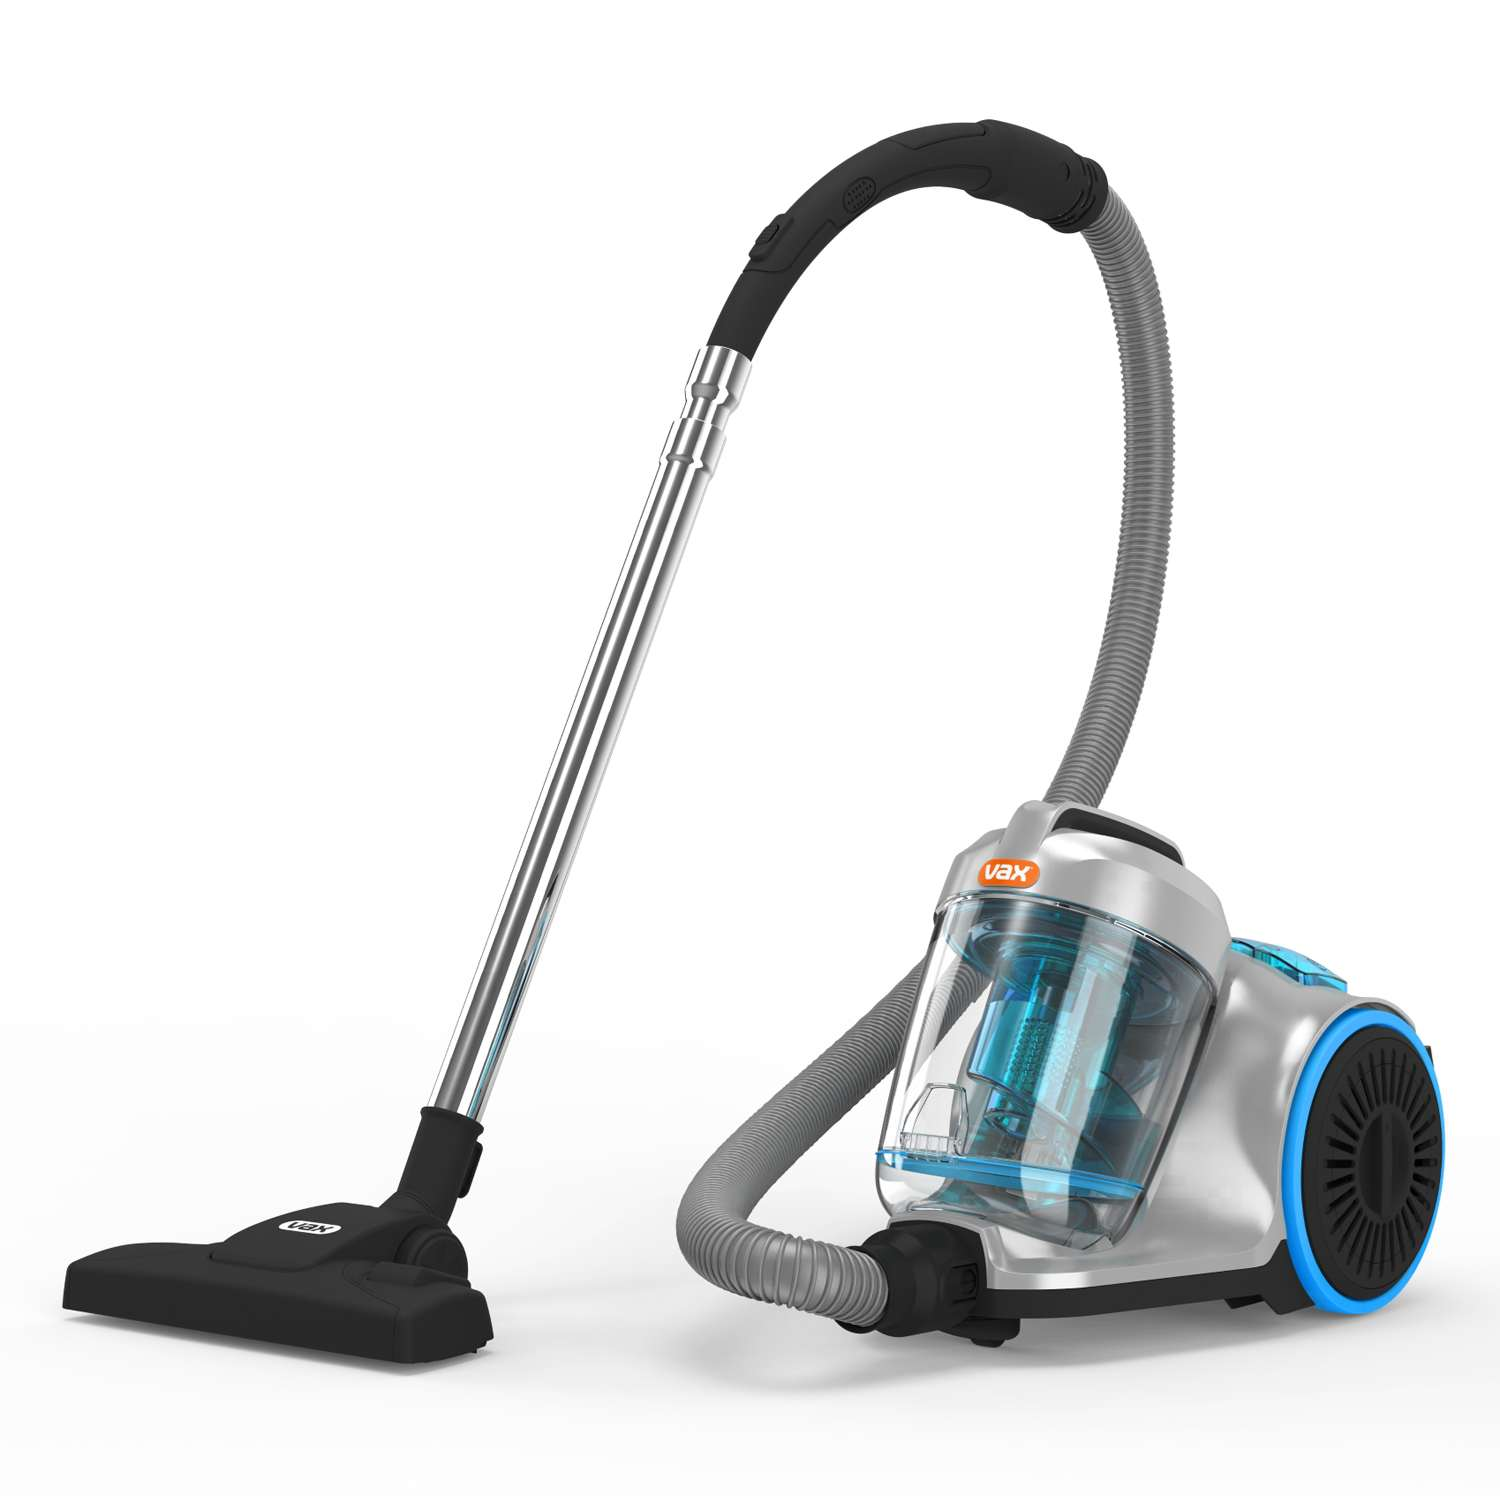 Vax Power 5 Pets C85p5pe 800w Bagless Cylinder Vacuum